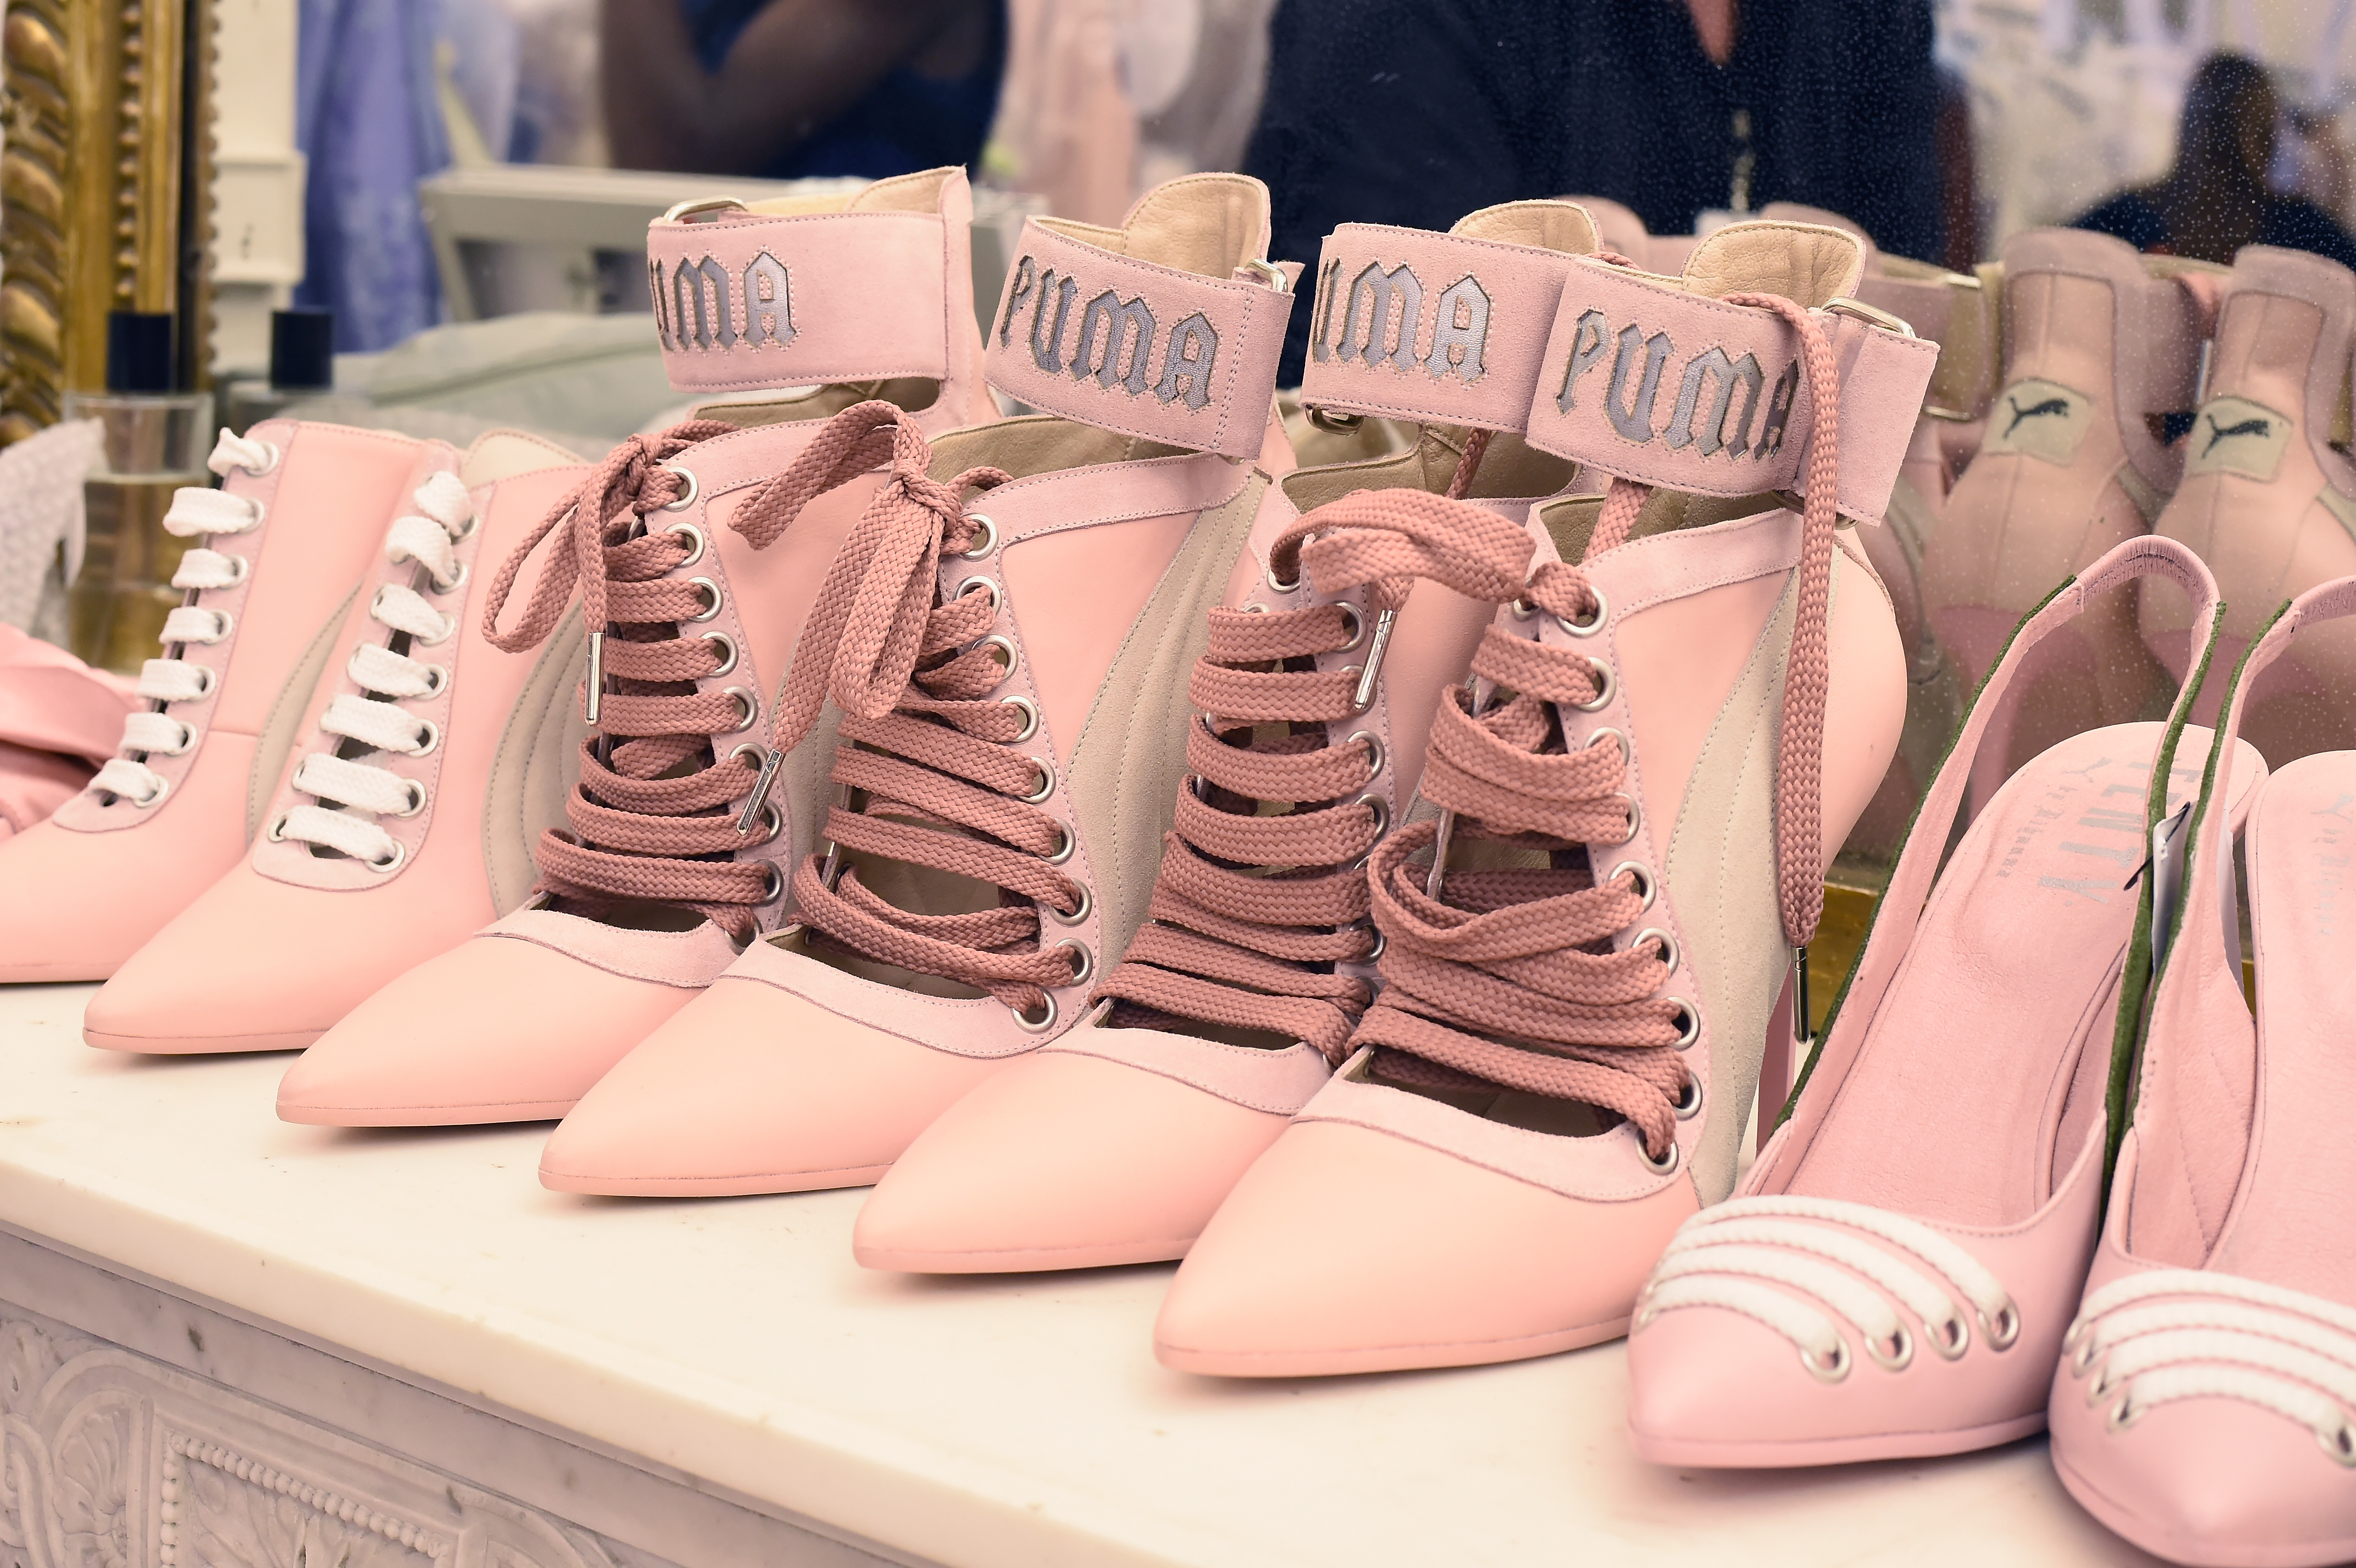 PARIS, FRANCE - SEPTEMBER 28: Model's shoes are seen backstage during FENTY x PUMA by Rihanna at Hotel Salomon de Rothschild on September 28, 2016 in Paris, France. (Photo by Victor Boyko/Getty Images for Fenty x Puma)